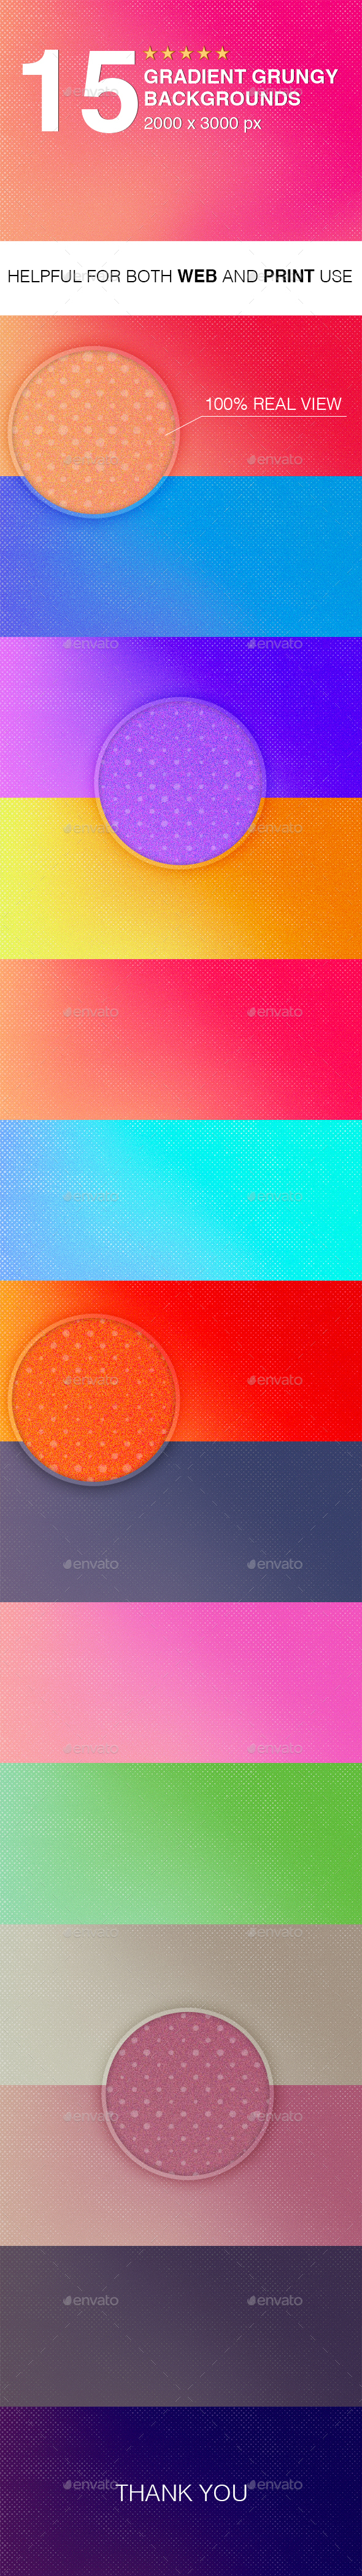 Gradient Grungy Backgrounds - Backgrounds Graphics